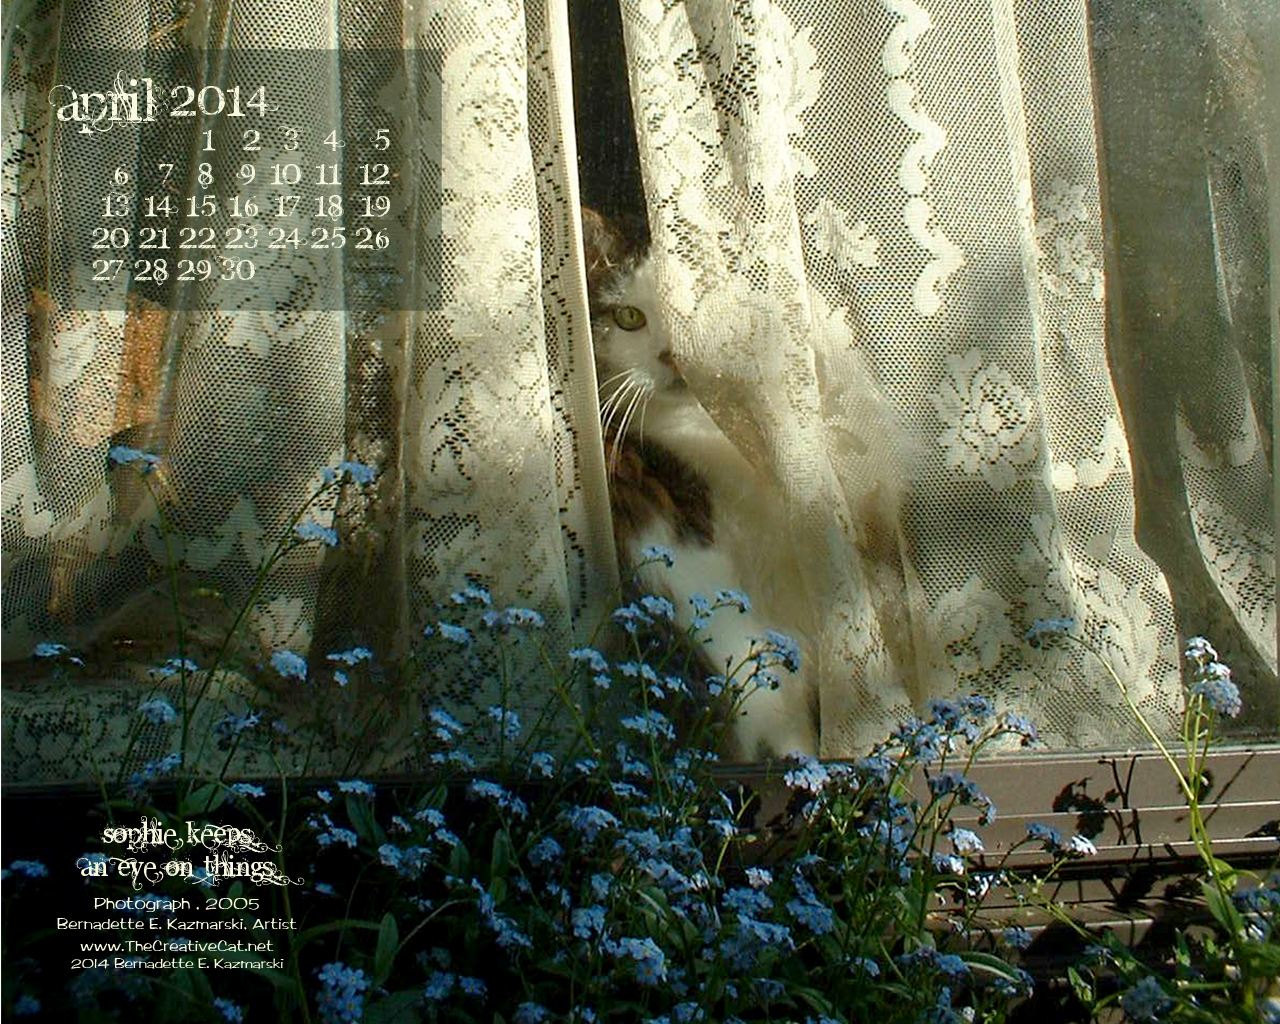 """Sophie Keeps an Eye on Things"" 1280 x 1024 for square and laptop monotors desktop calendar wallpaper"